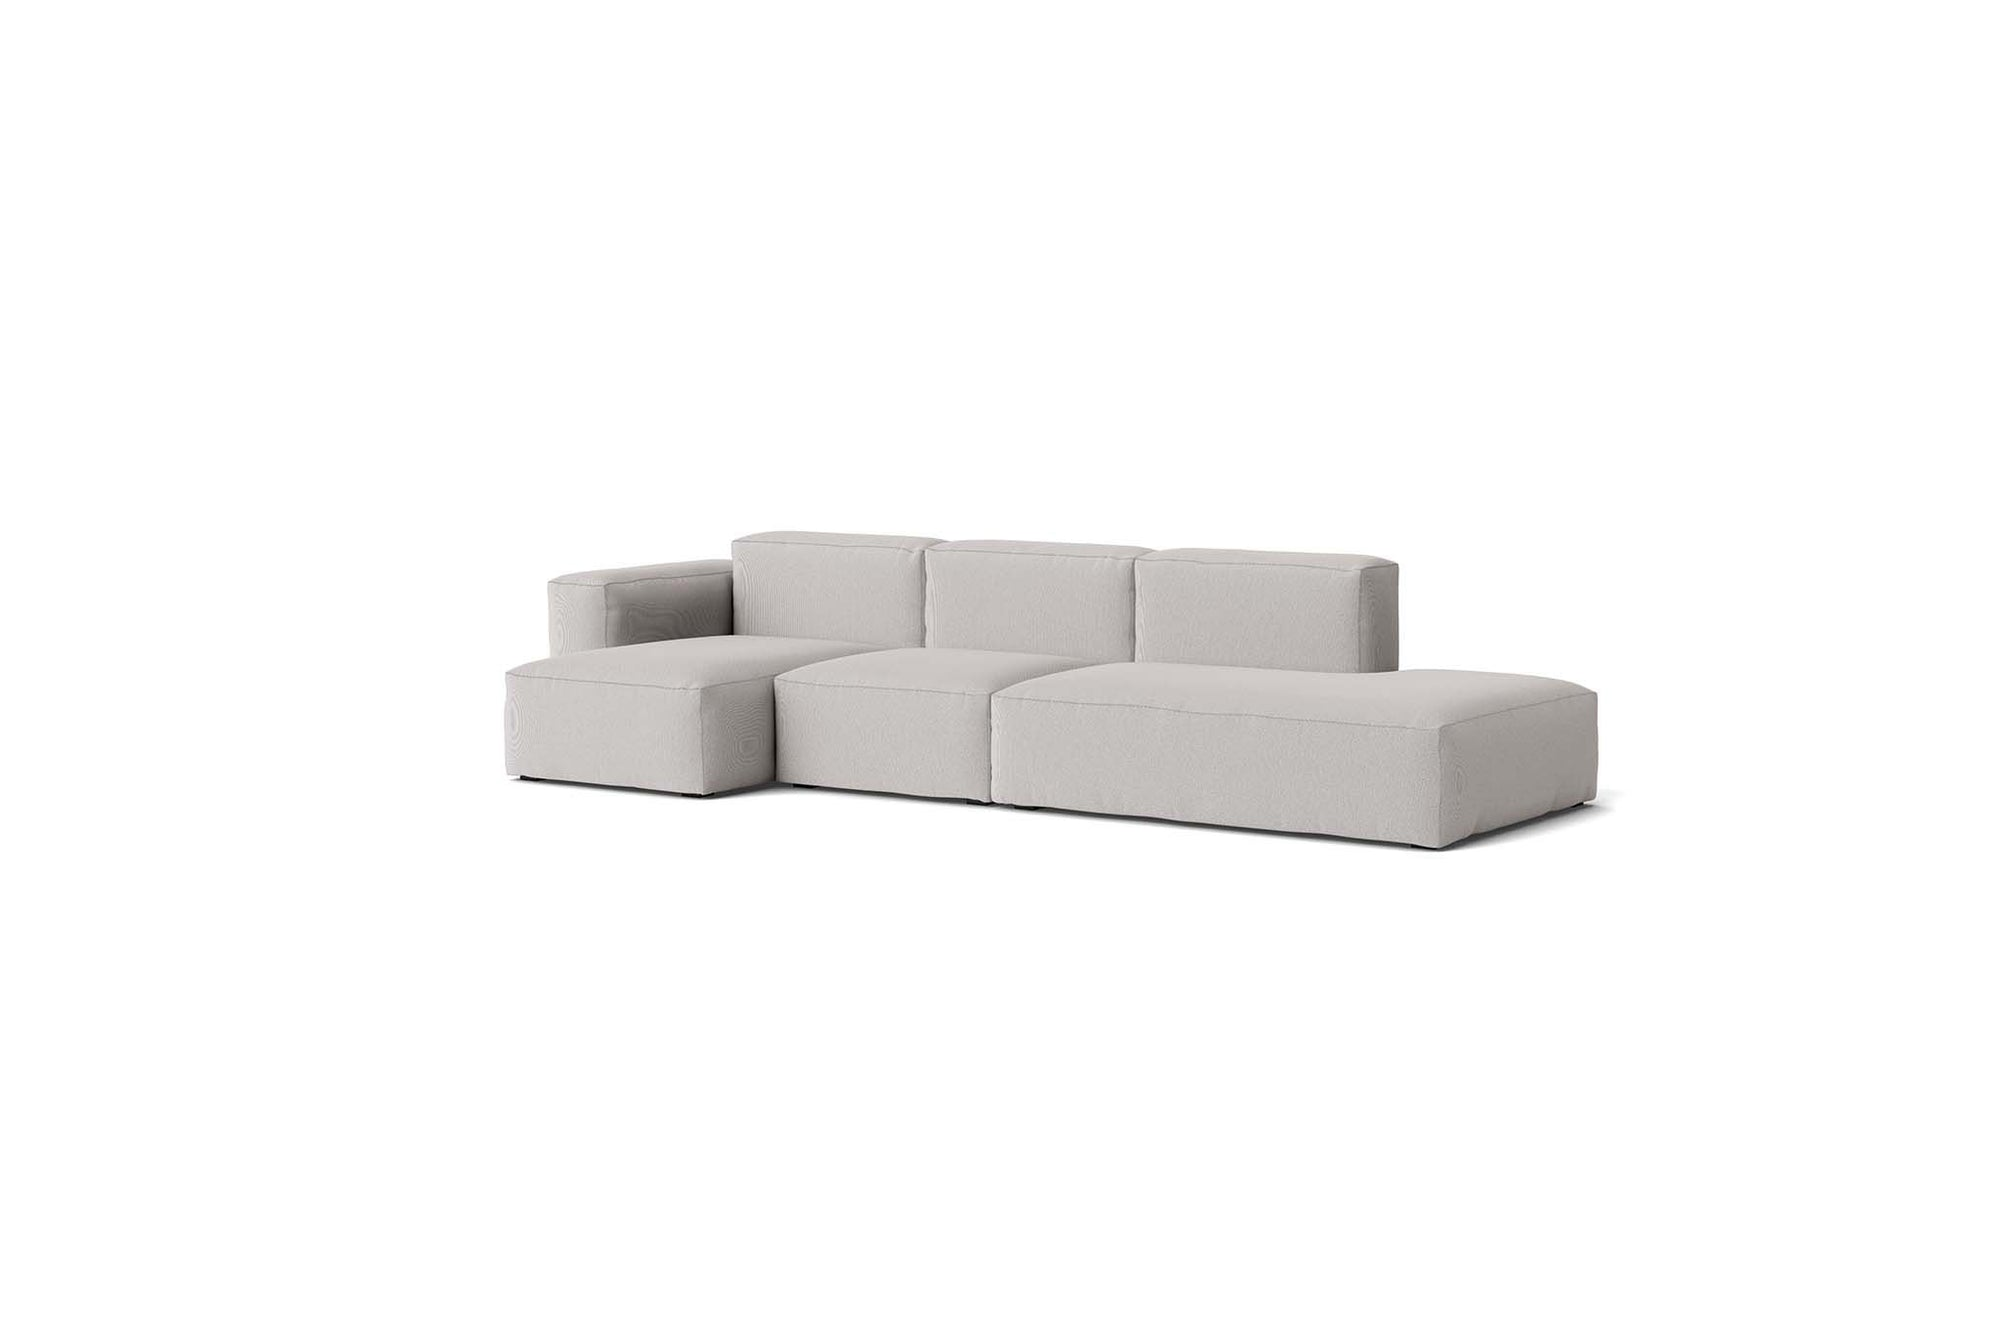 HAY - Mags Soft Low Sofa - 3 Seater - Combination 3 with Left Low Armrest